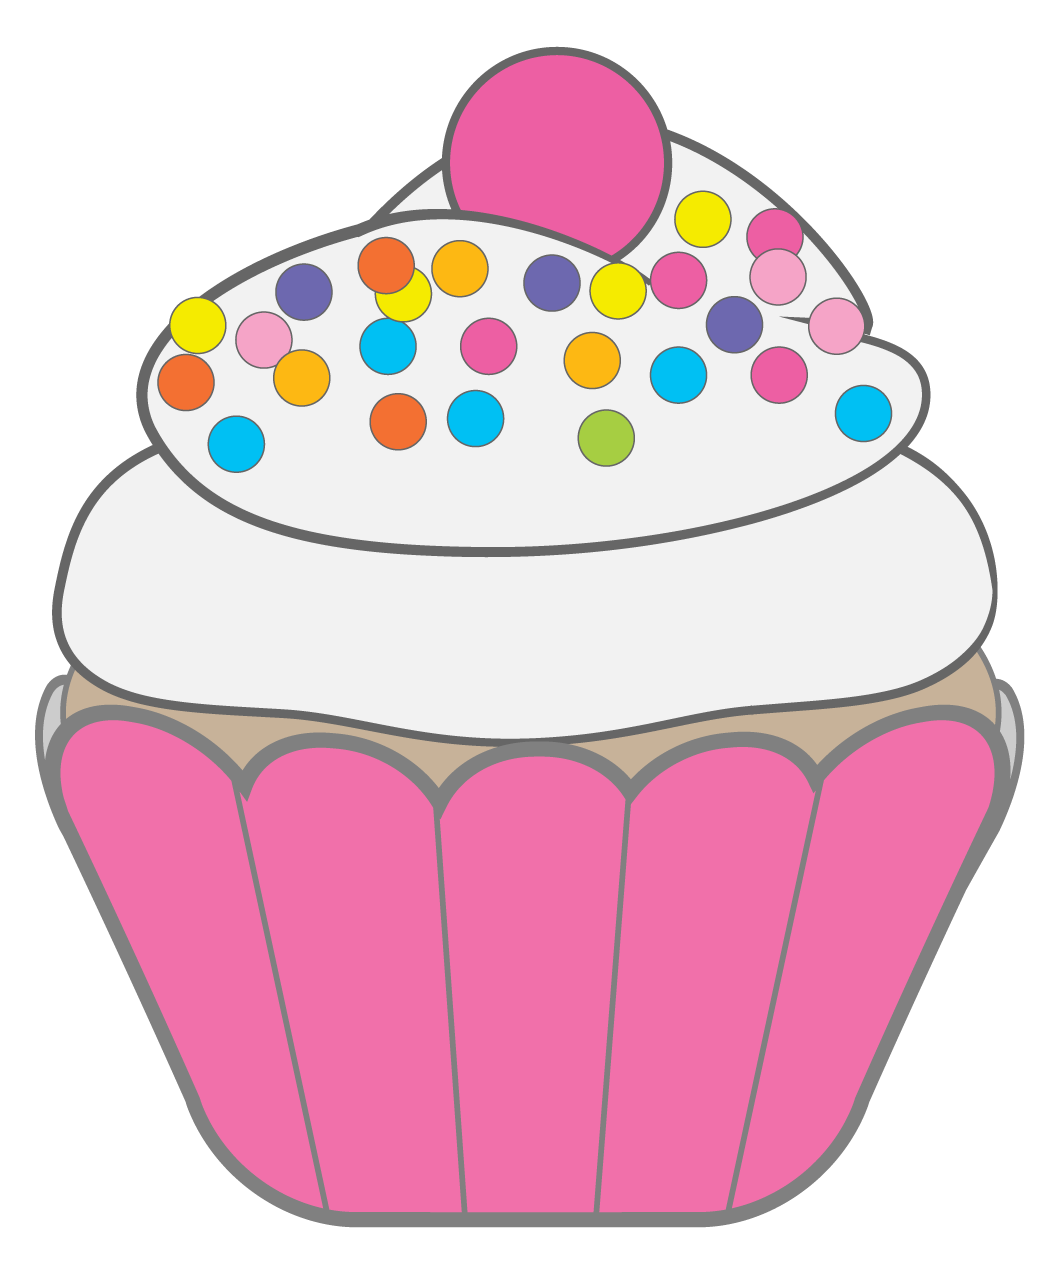 Muffins clipart. Cupcakes by carol smith